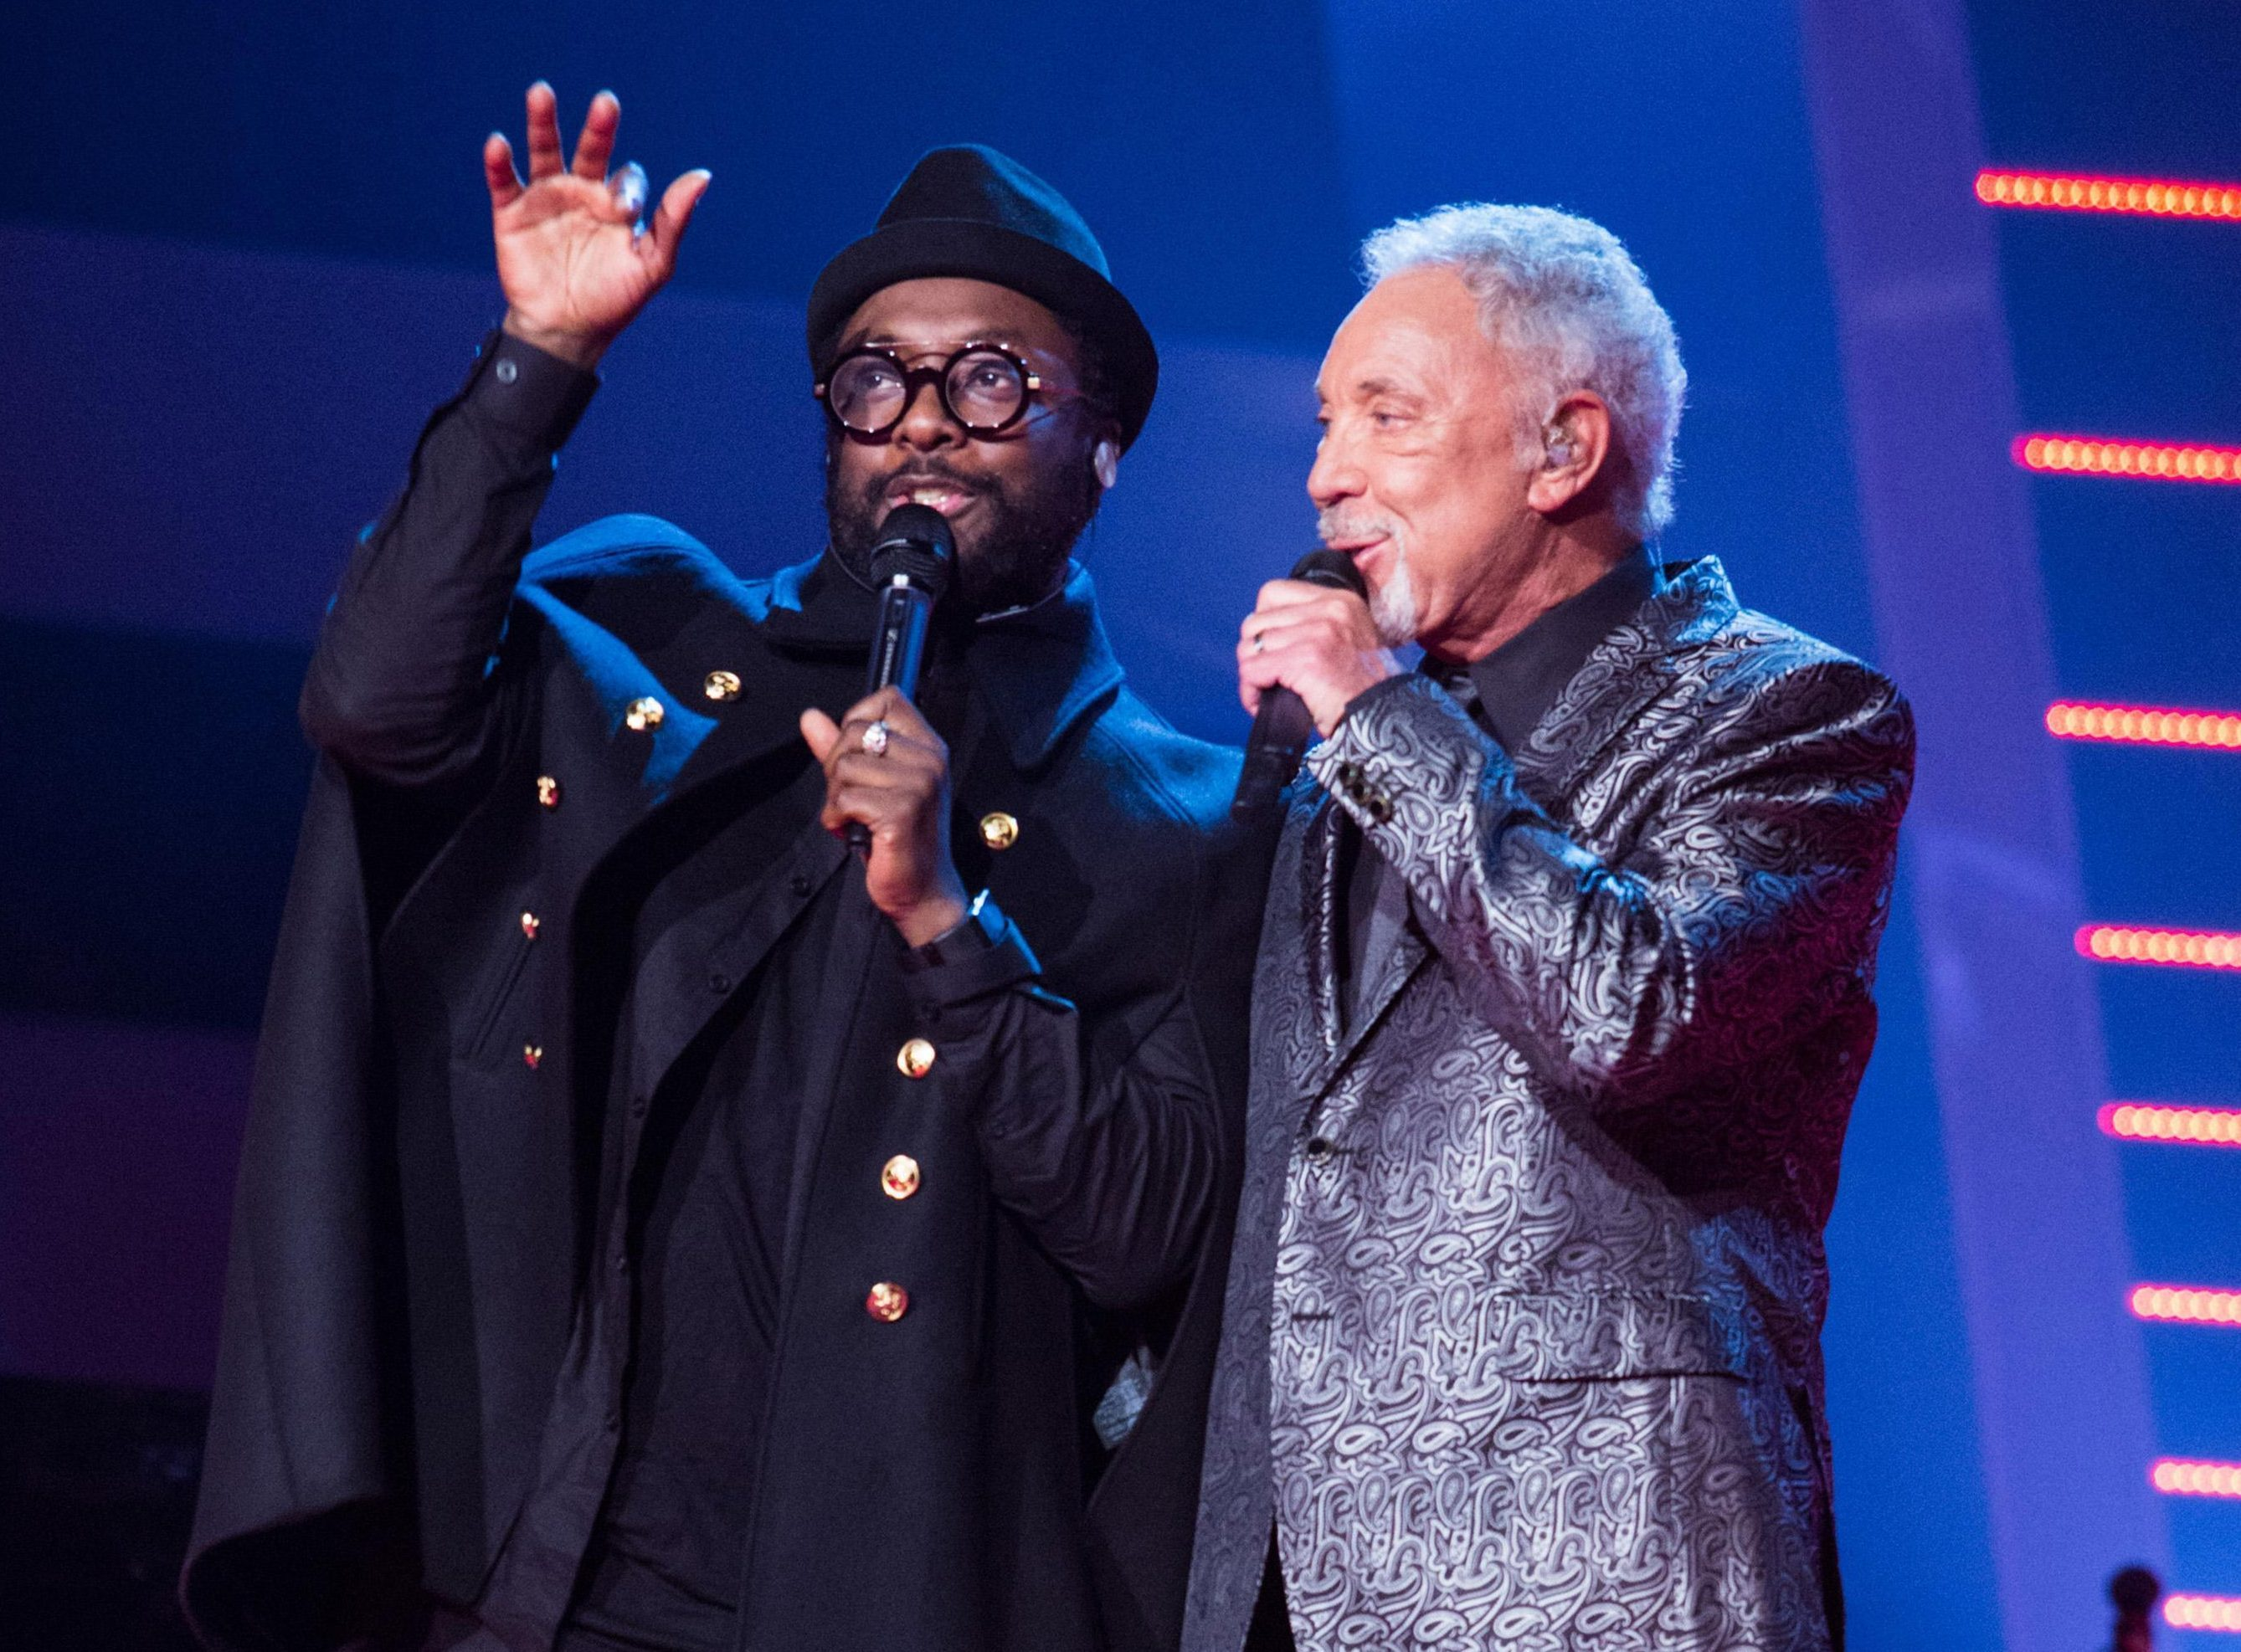 Sir Tom Jones reveals he will team up with fellow The Voice star will.i.am to record single together